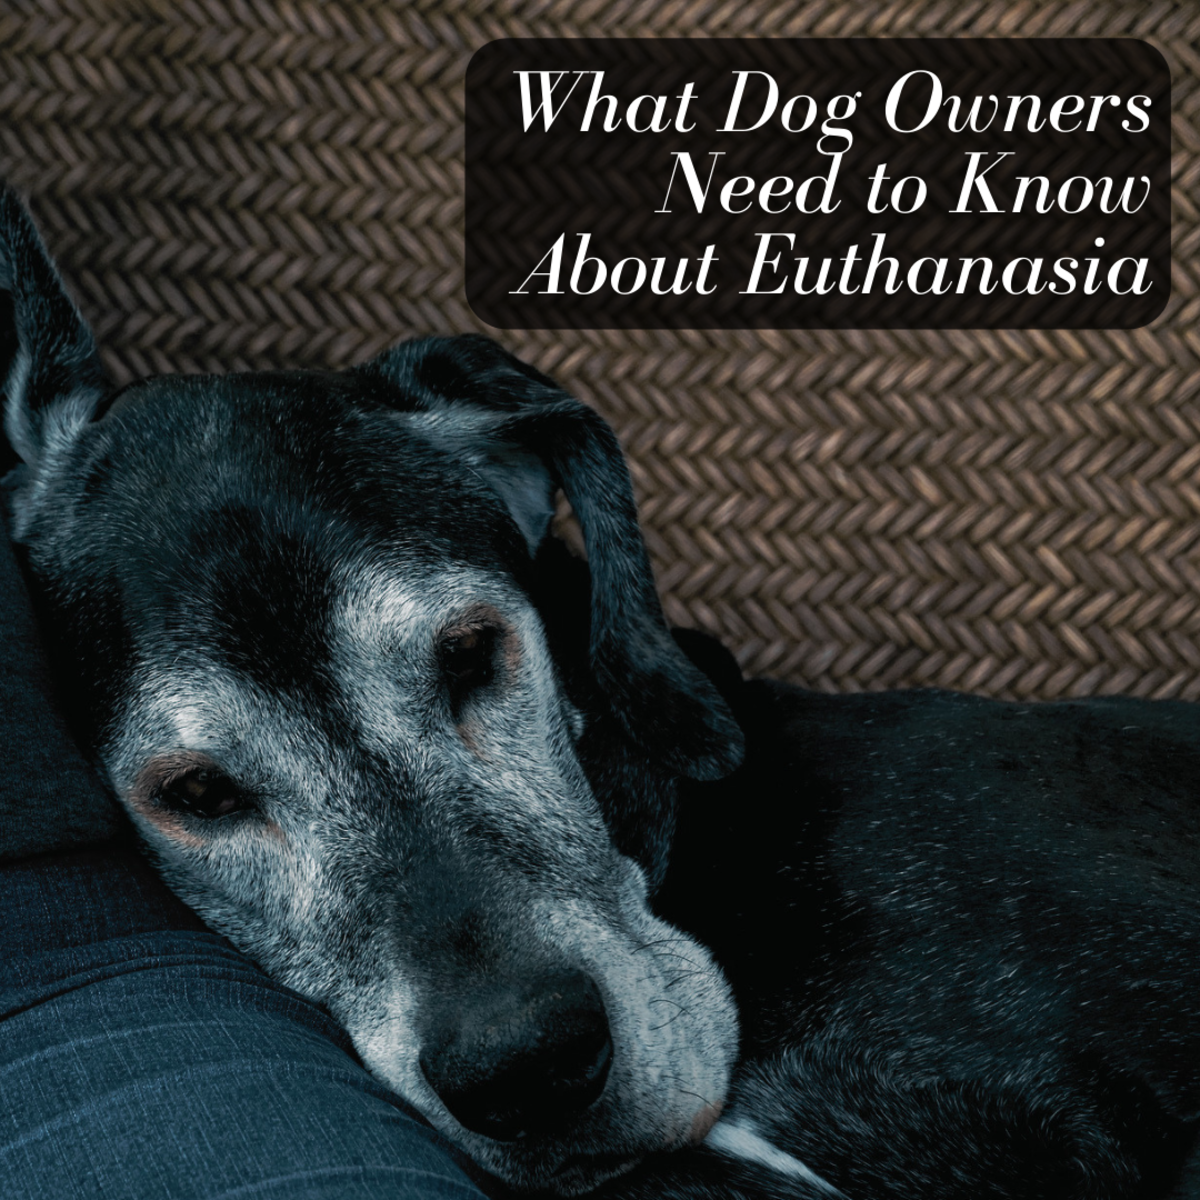 This article will provide you with everything you need to know about the process of euthanizing your family dog, including how to determine their quality of life and what the process is like.